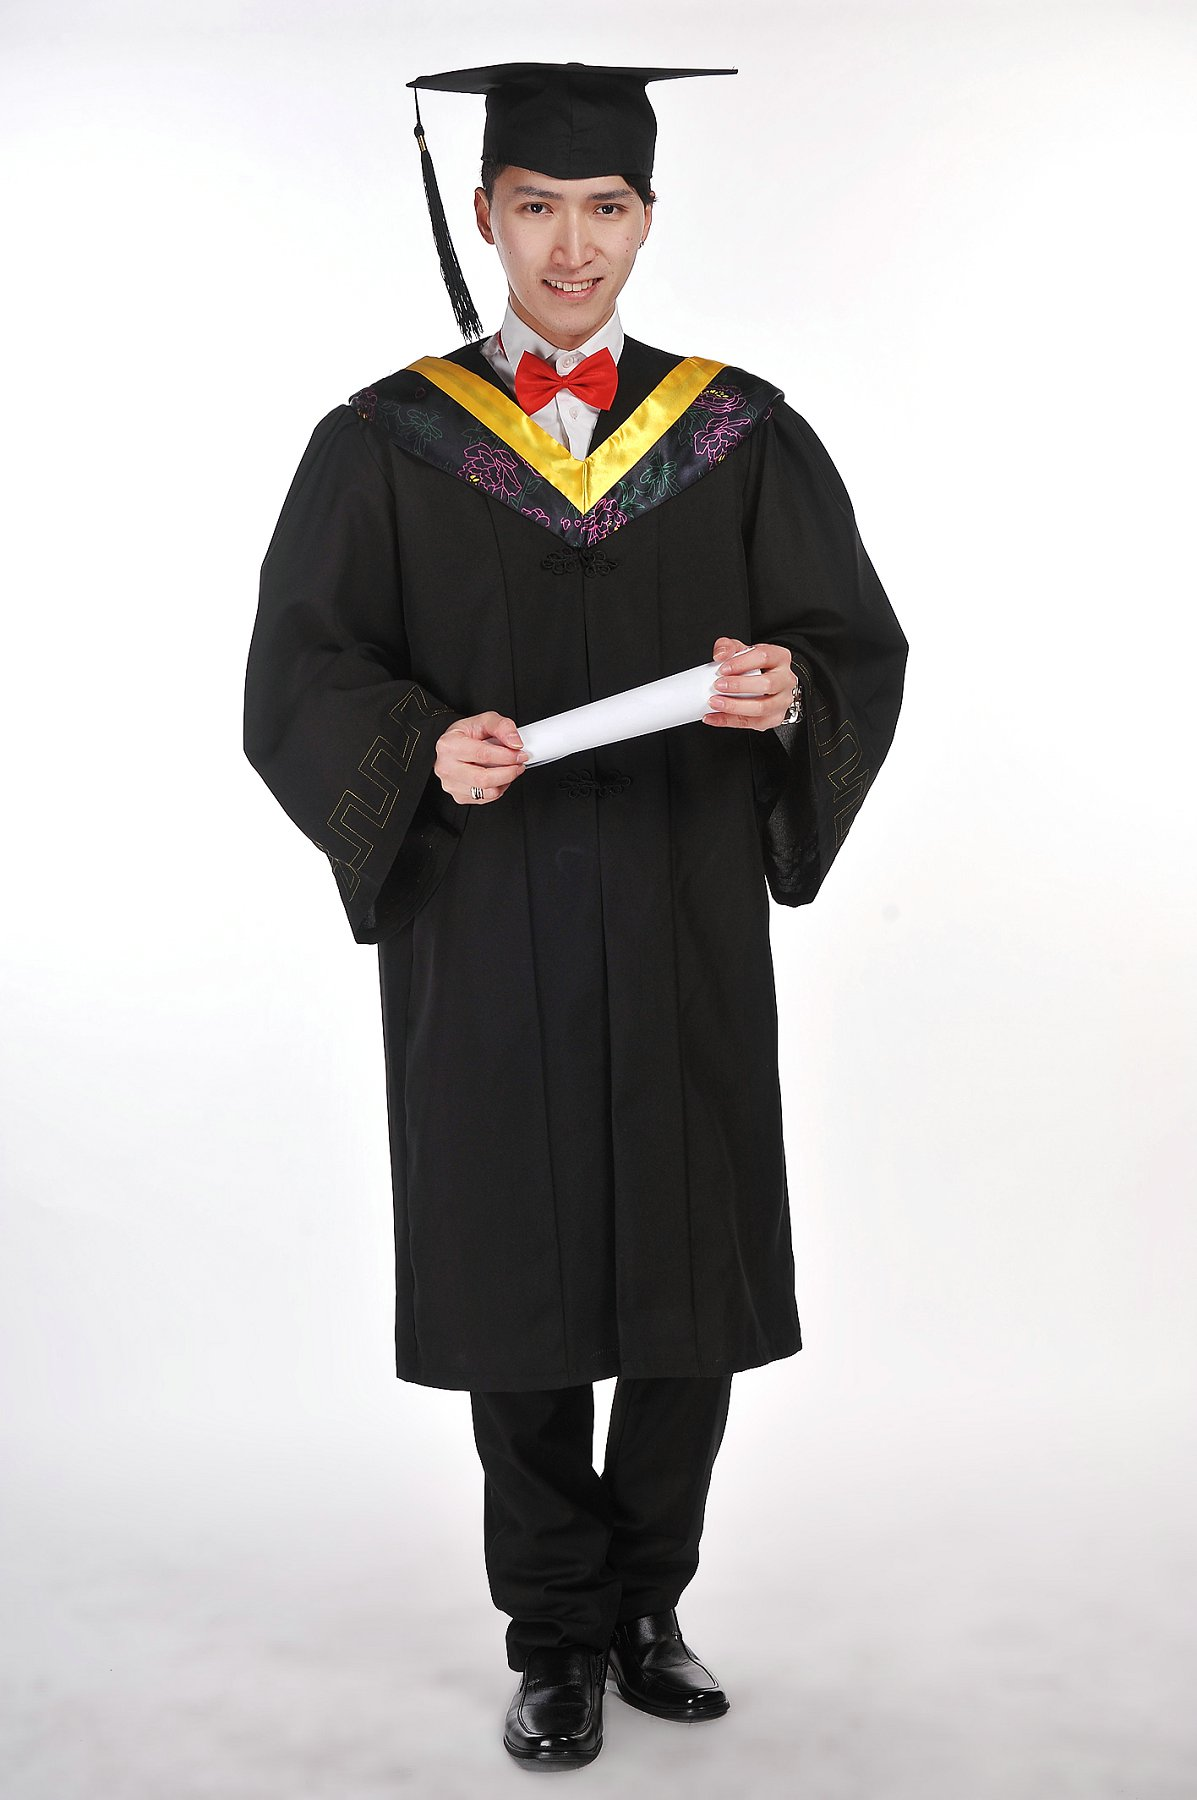 Buy Degree graduation gown dress clothes pictured bachelor cap and ...